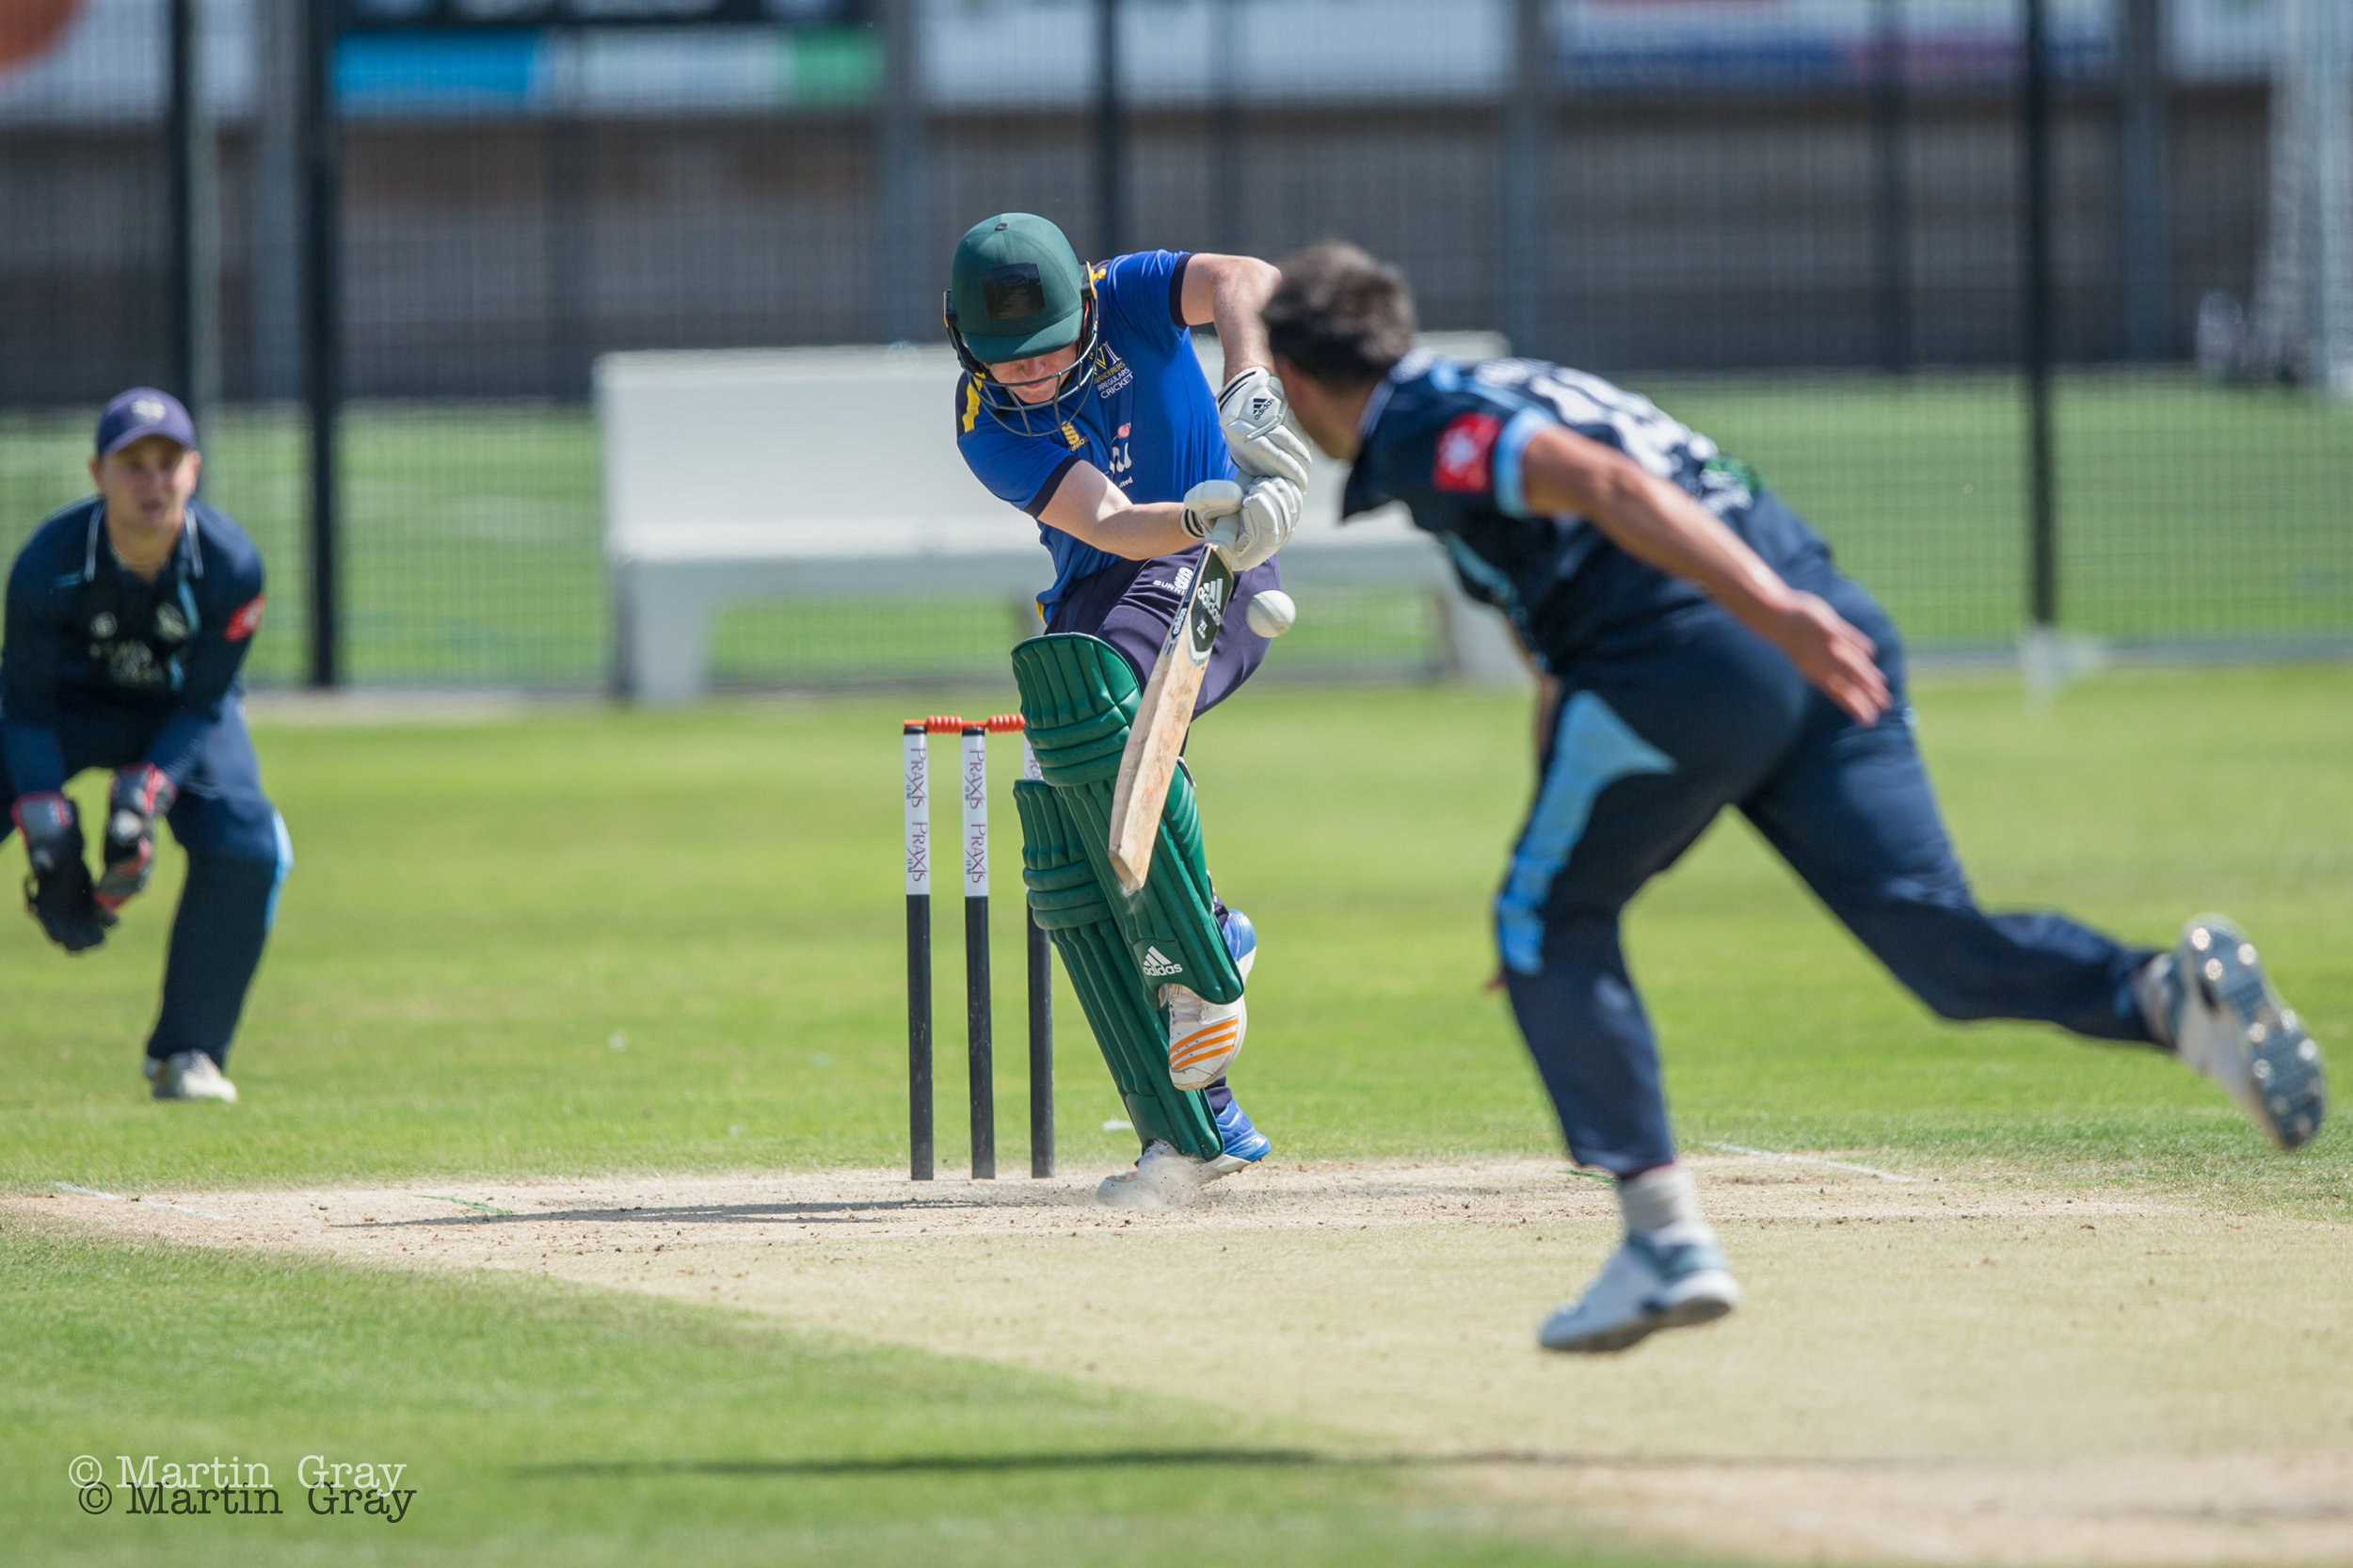 Kemp Le Tissier Cobo v 2mi Wanderers in CI League action 29th June 2019… Cobo win… more to be added…